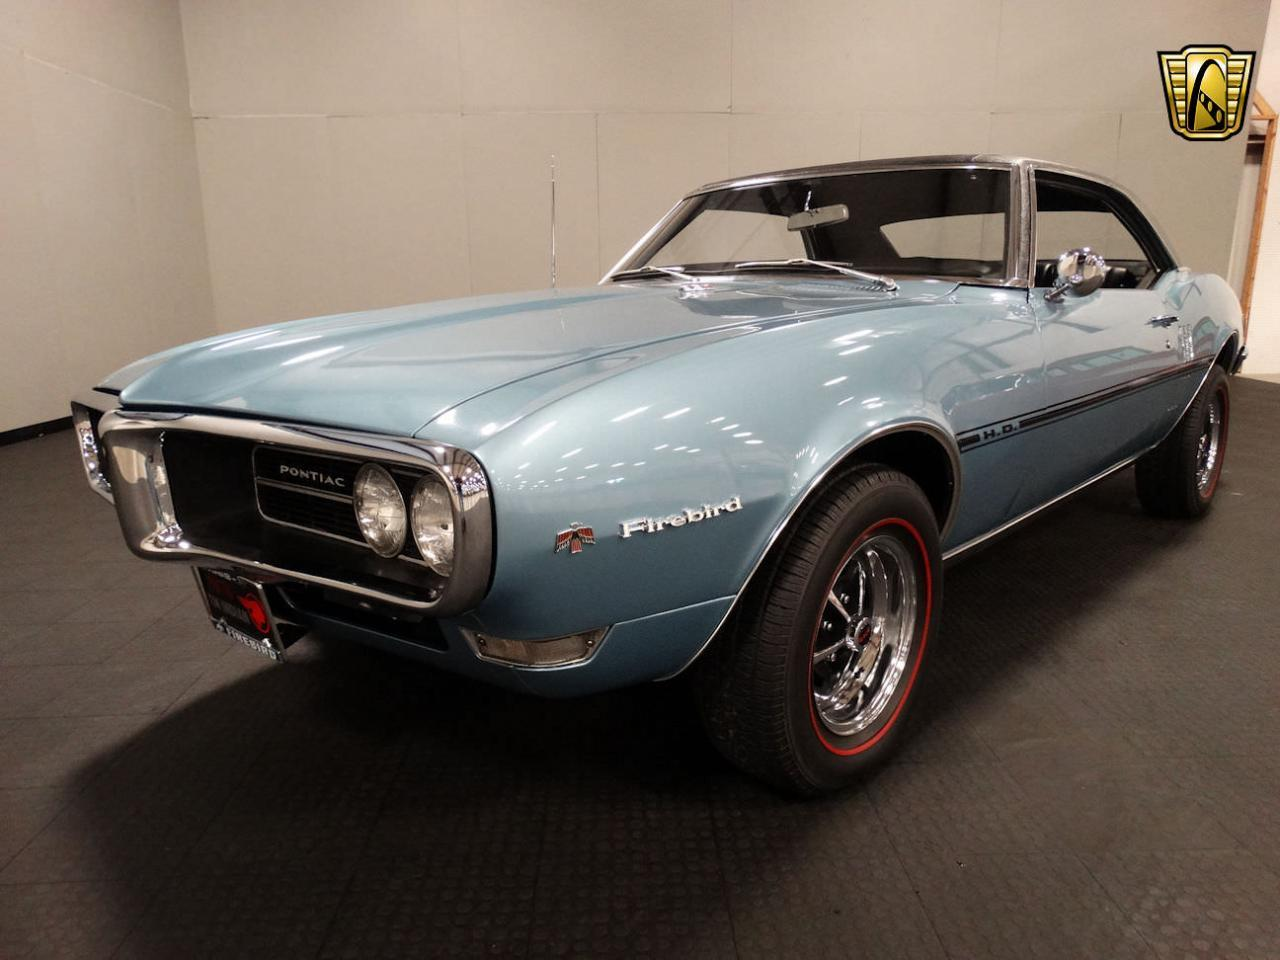 Large Picture of 1968 Pontiac Firebird located in Indiana - $24,995.00 - MFU0